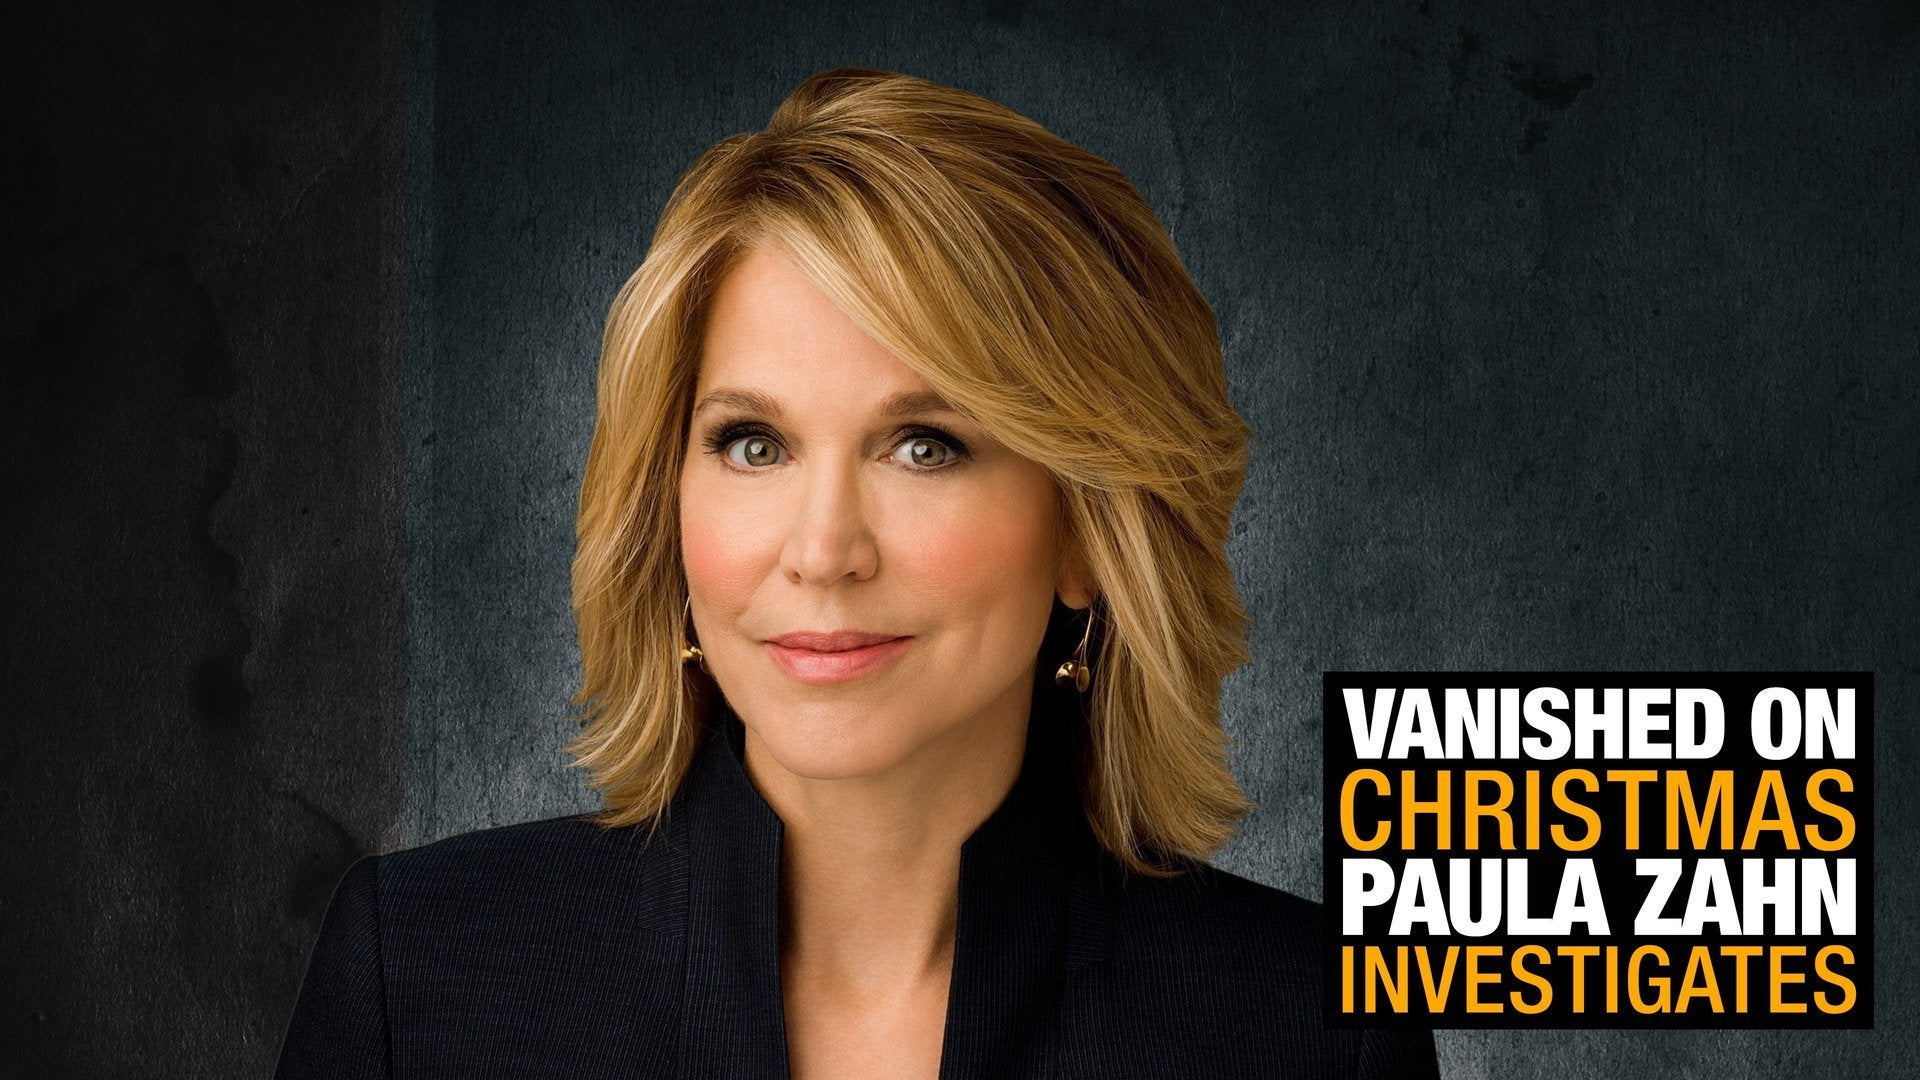 Vanished on Christmas: Paula Zahn Investigates